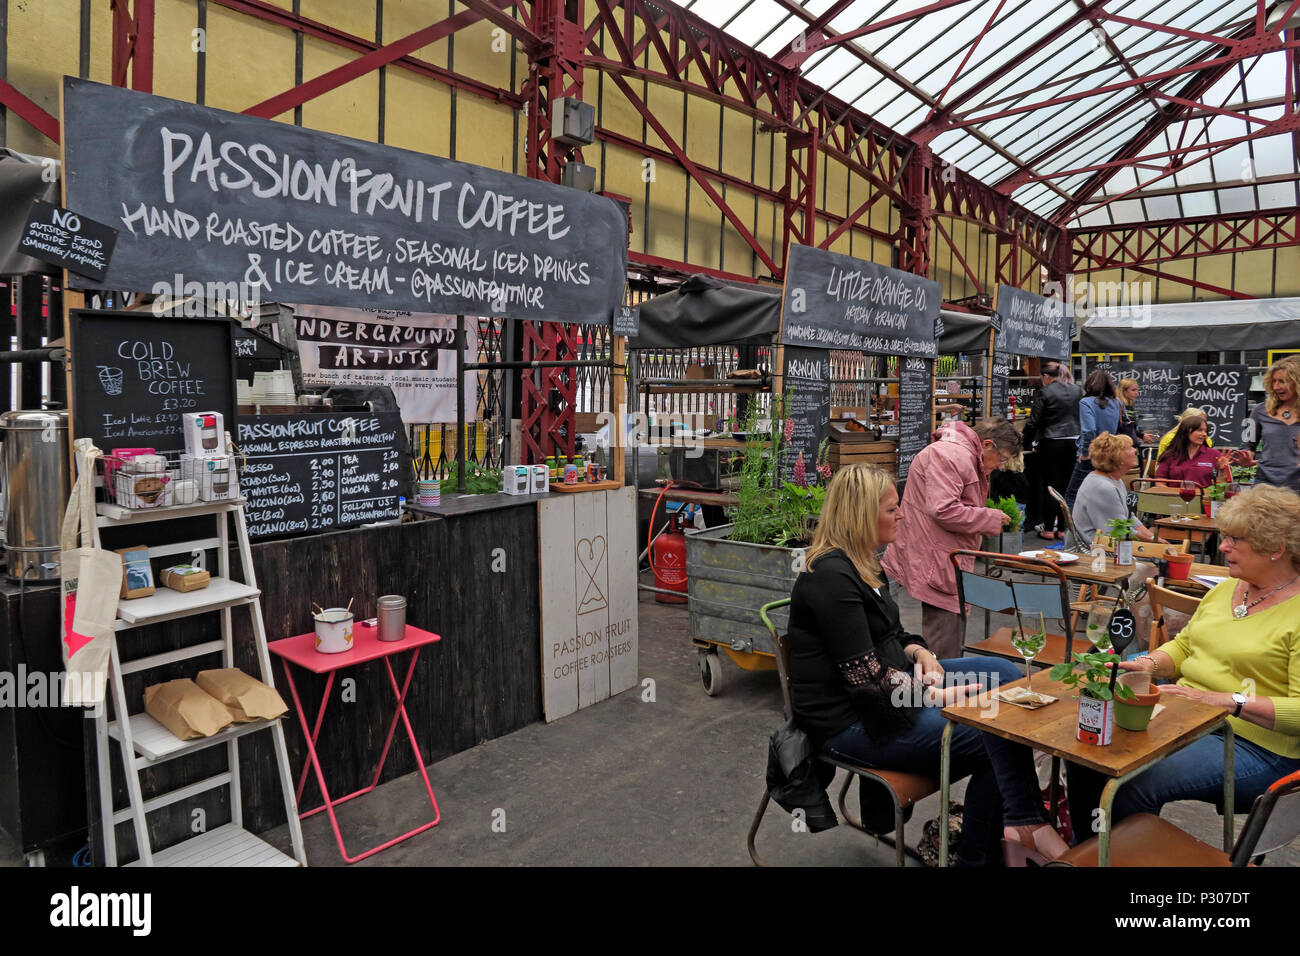 Altrincham Market House, Passion Fruit Coffee Stall, Trafford, Greater Manchester, North West England, UK - Stock Image